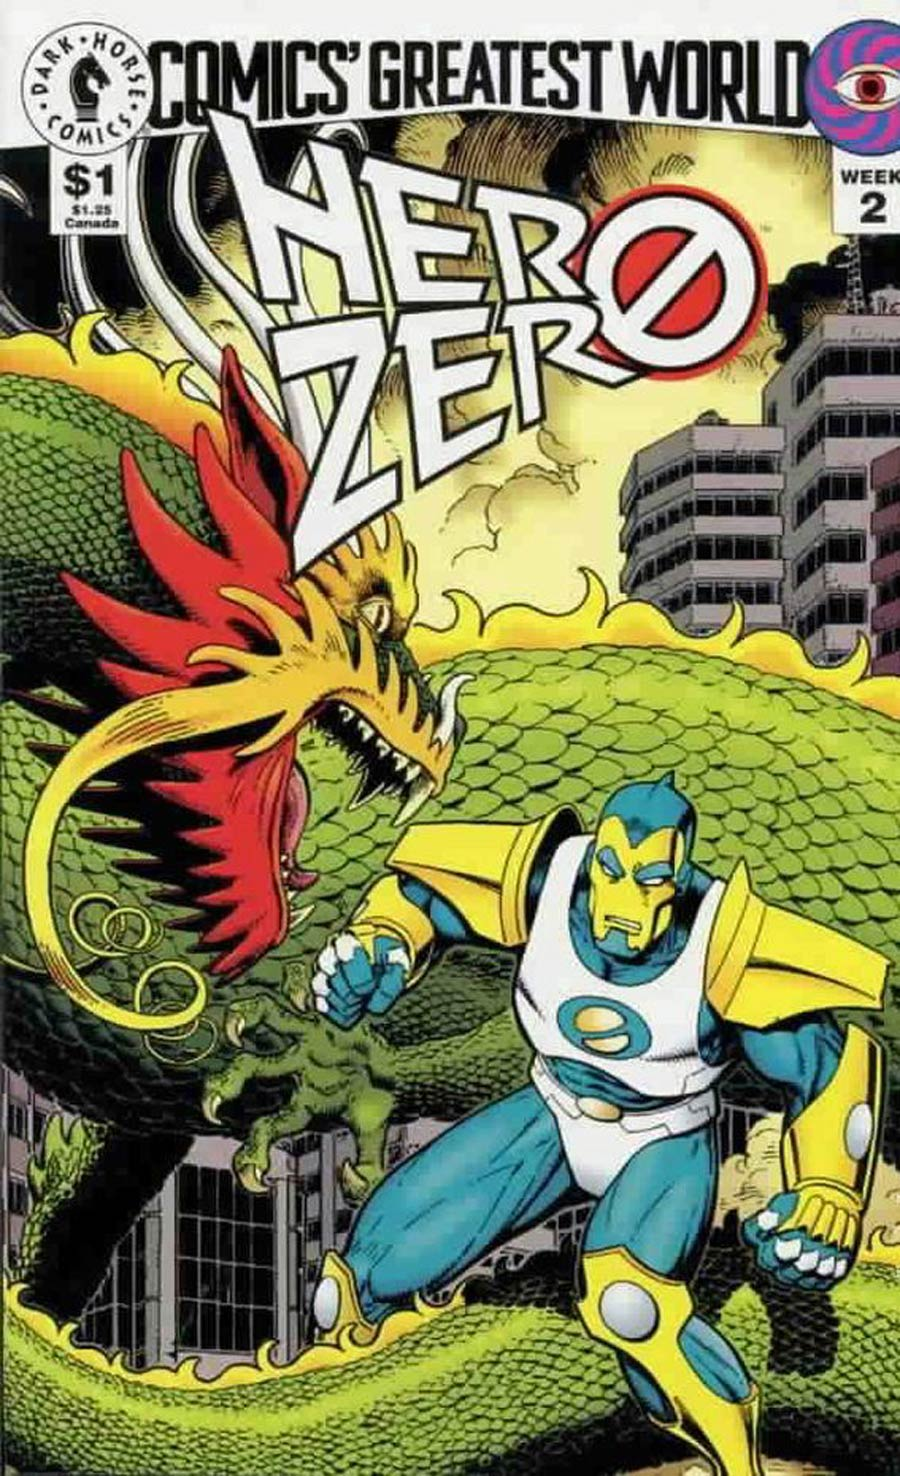 Comics Greatest World Vortex Week #2 Hero Zero